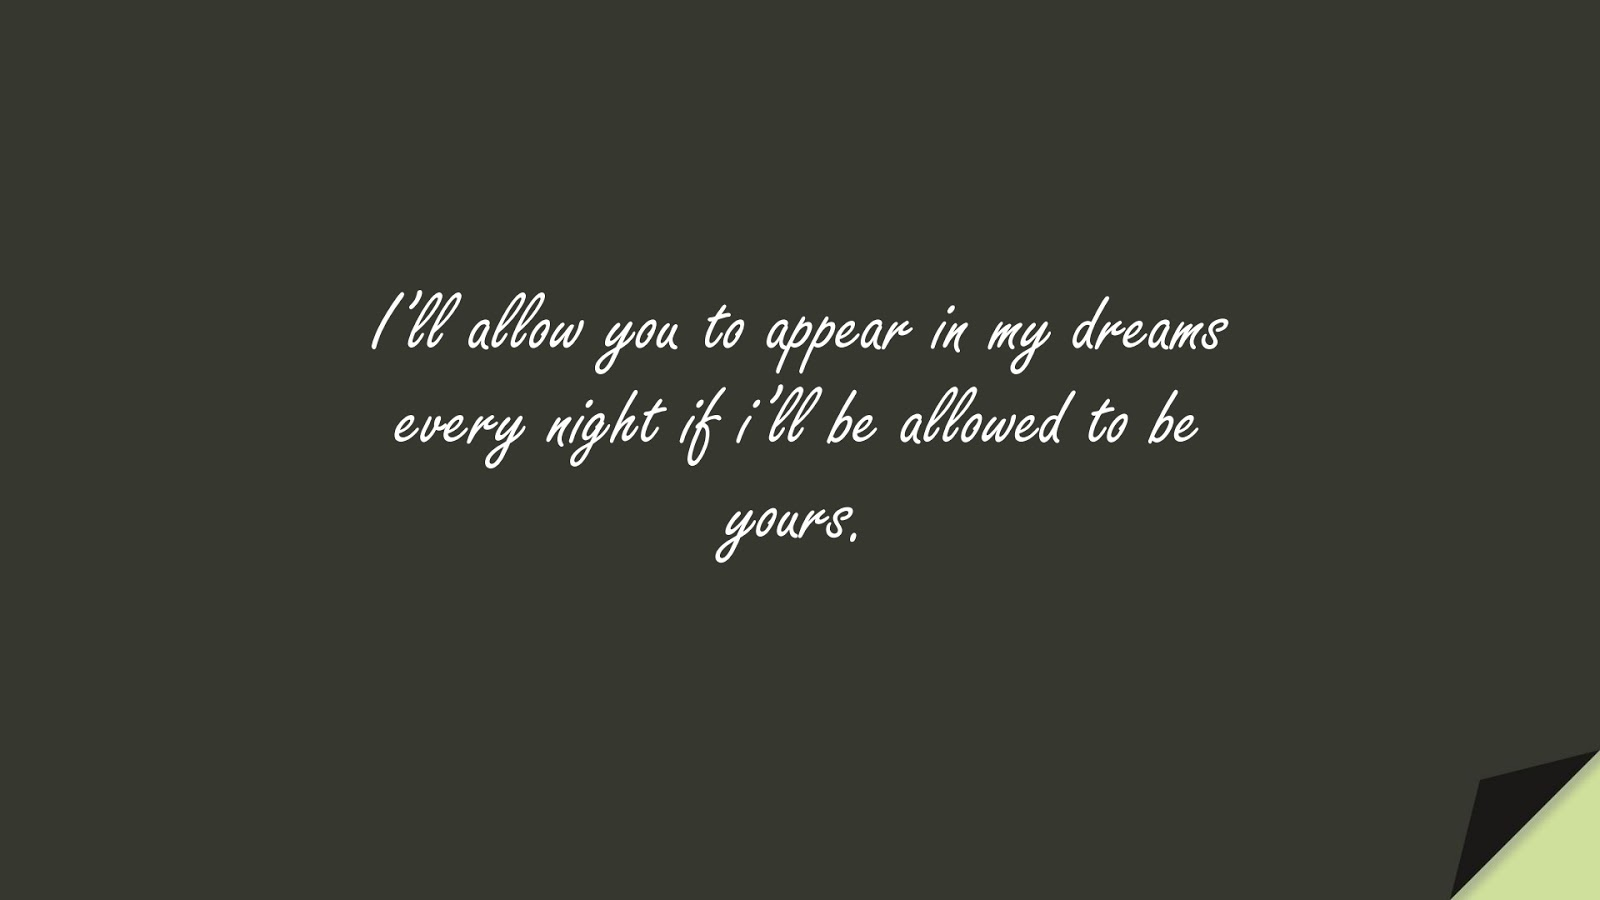 I'll allow you to appear in my dreams every night if i'll be allowed to be yours.FALSE